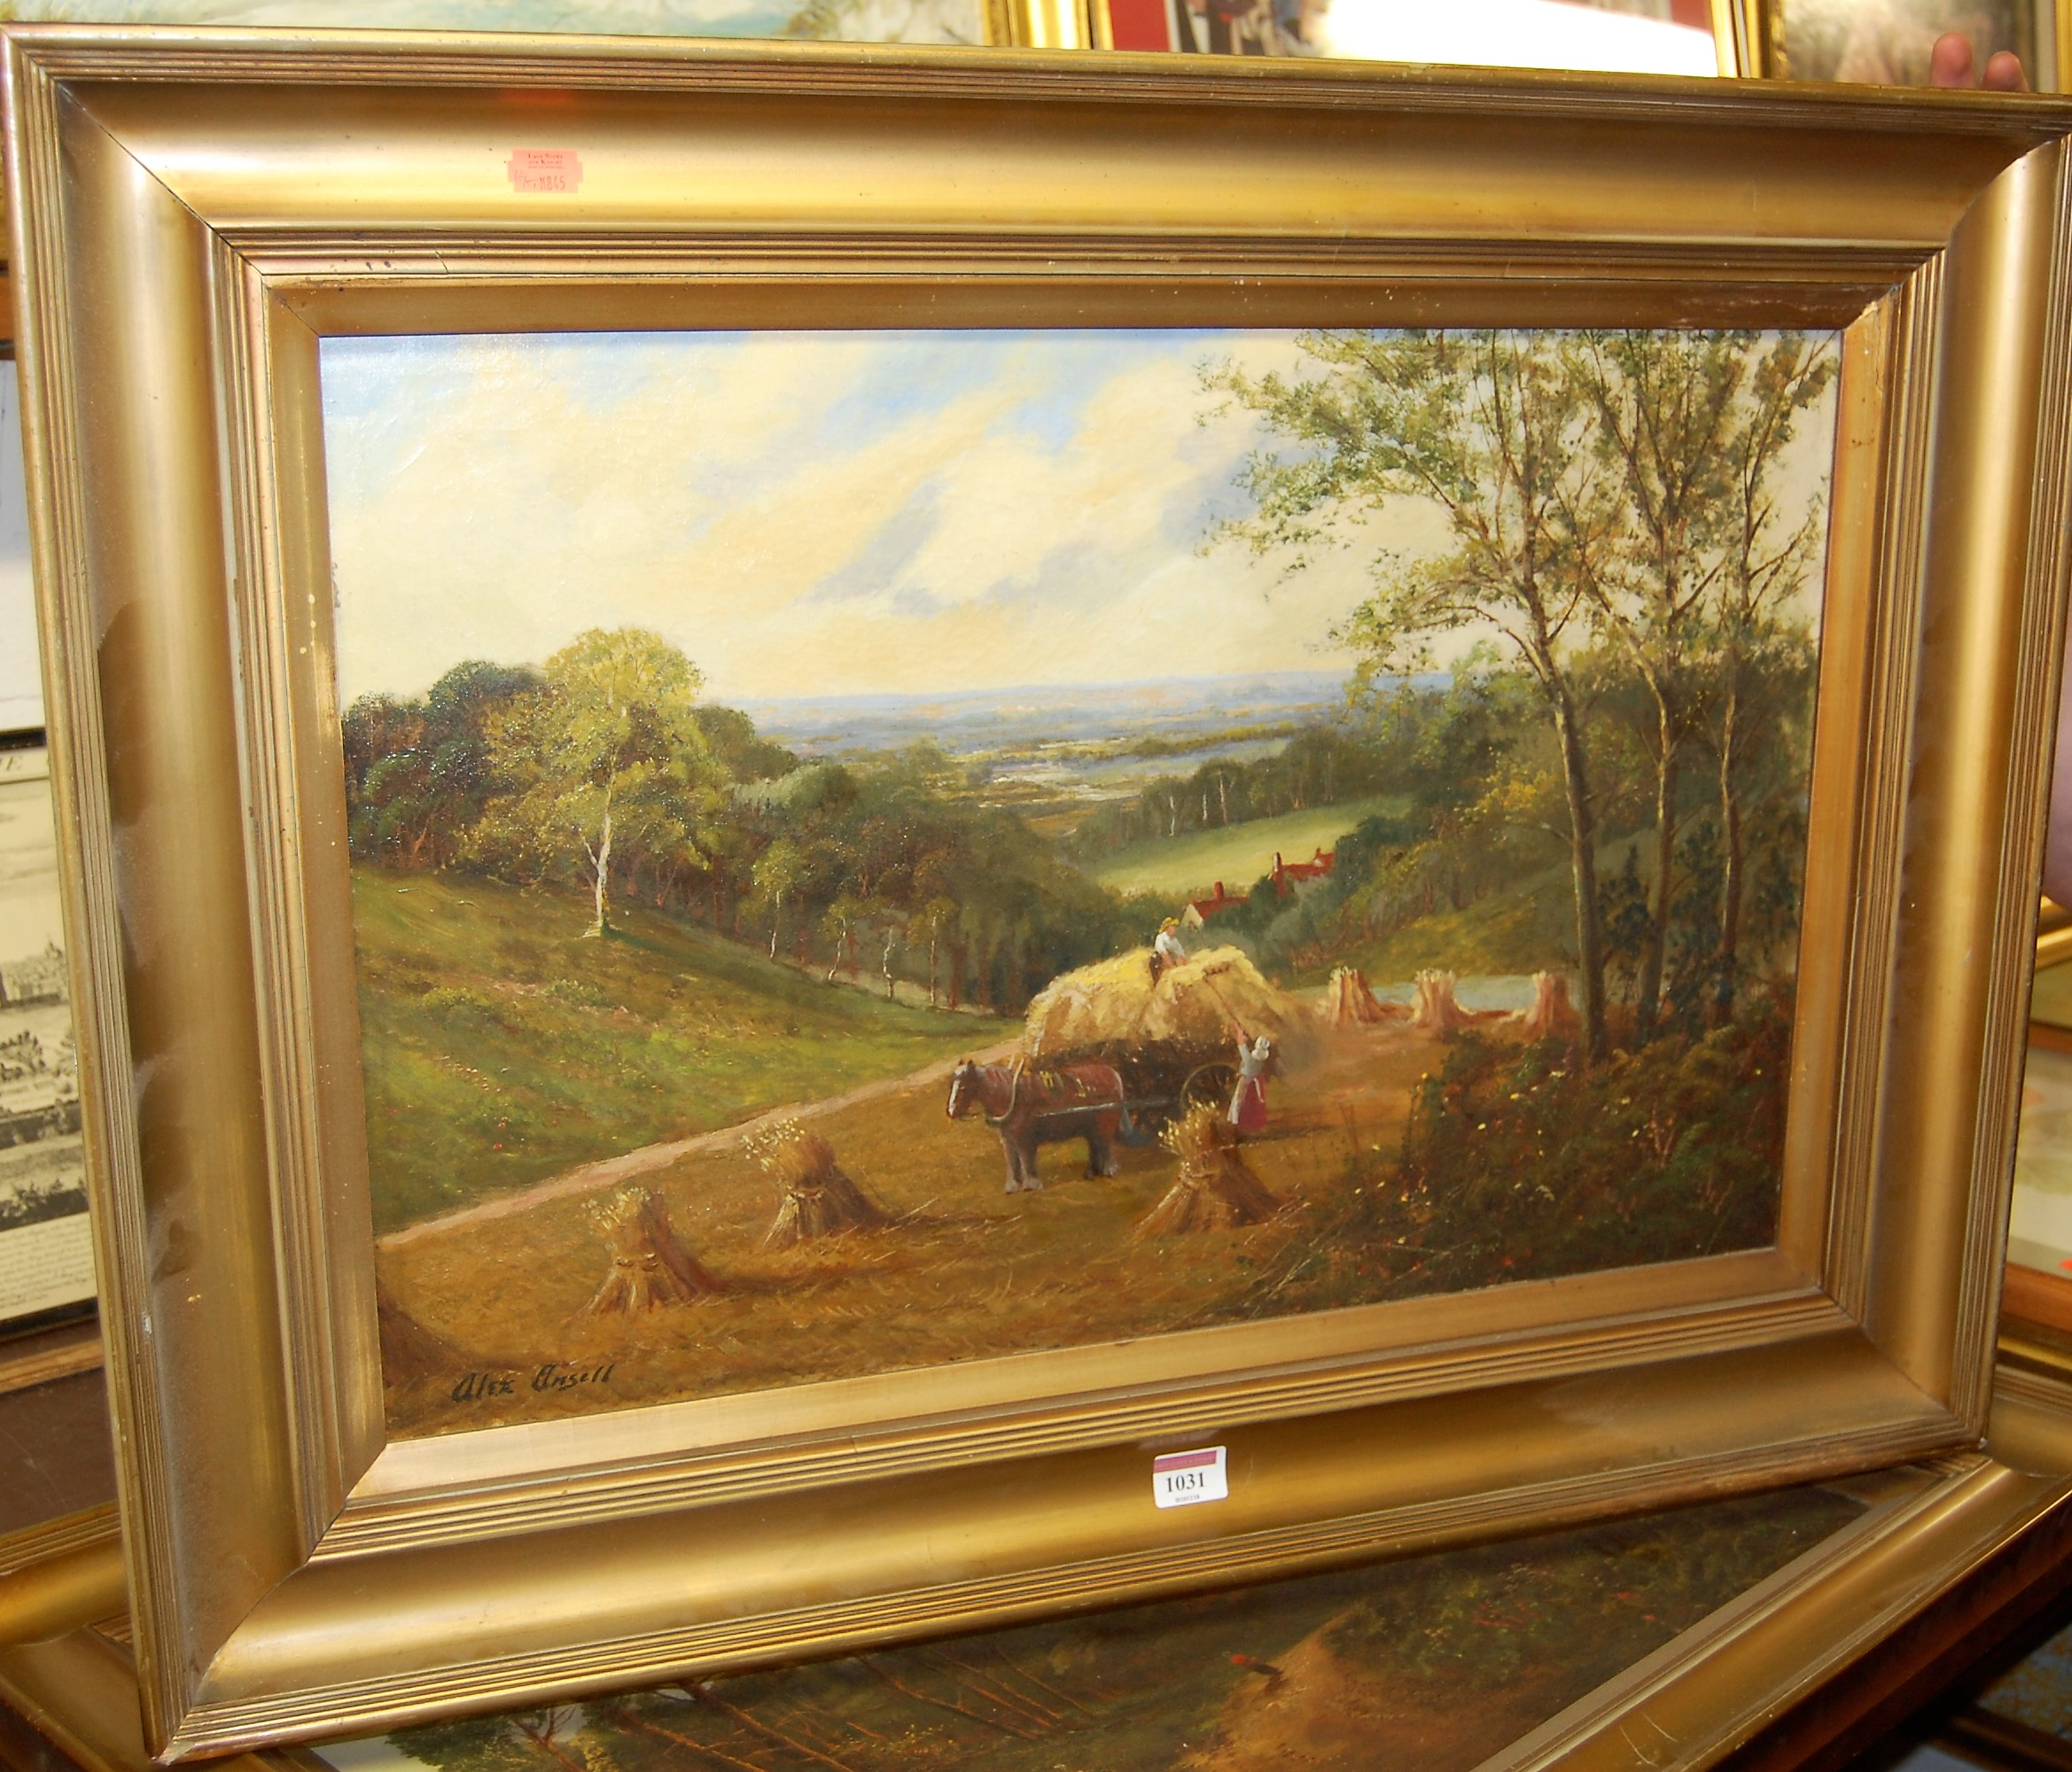 Lot 1031 - Alex Ansell - Loading the haycart, oil on canvas, signed lower left, 40 x 60cm; and Returning